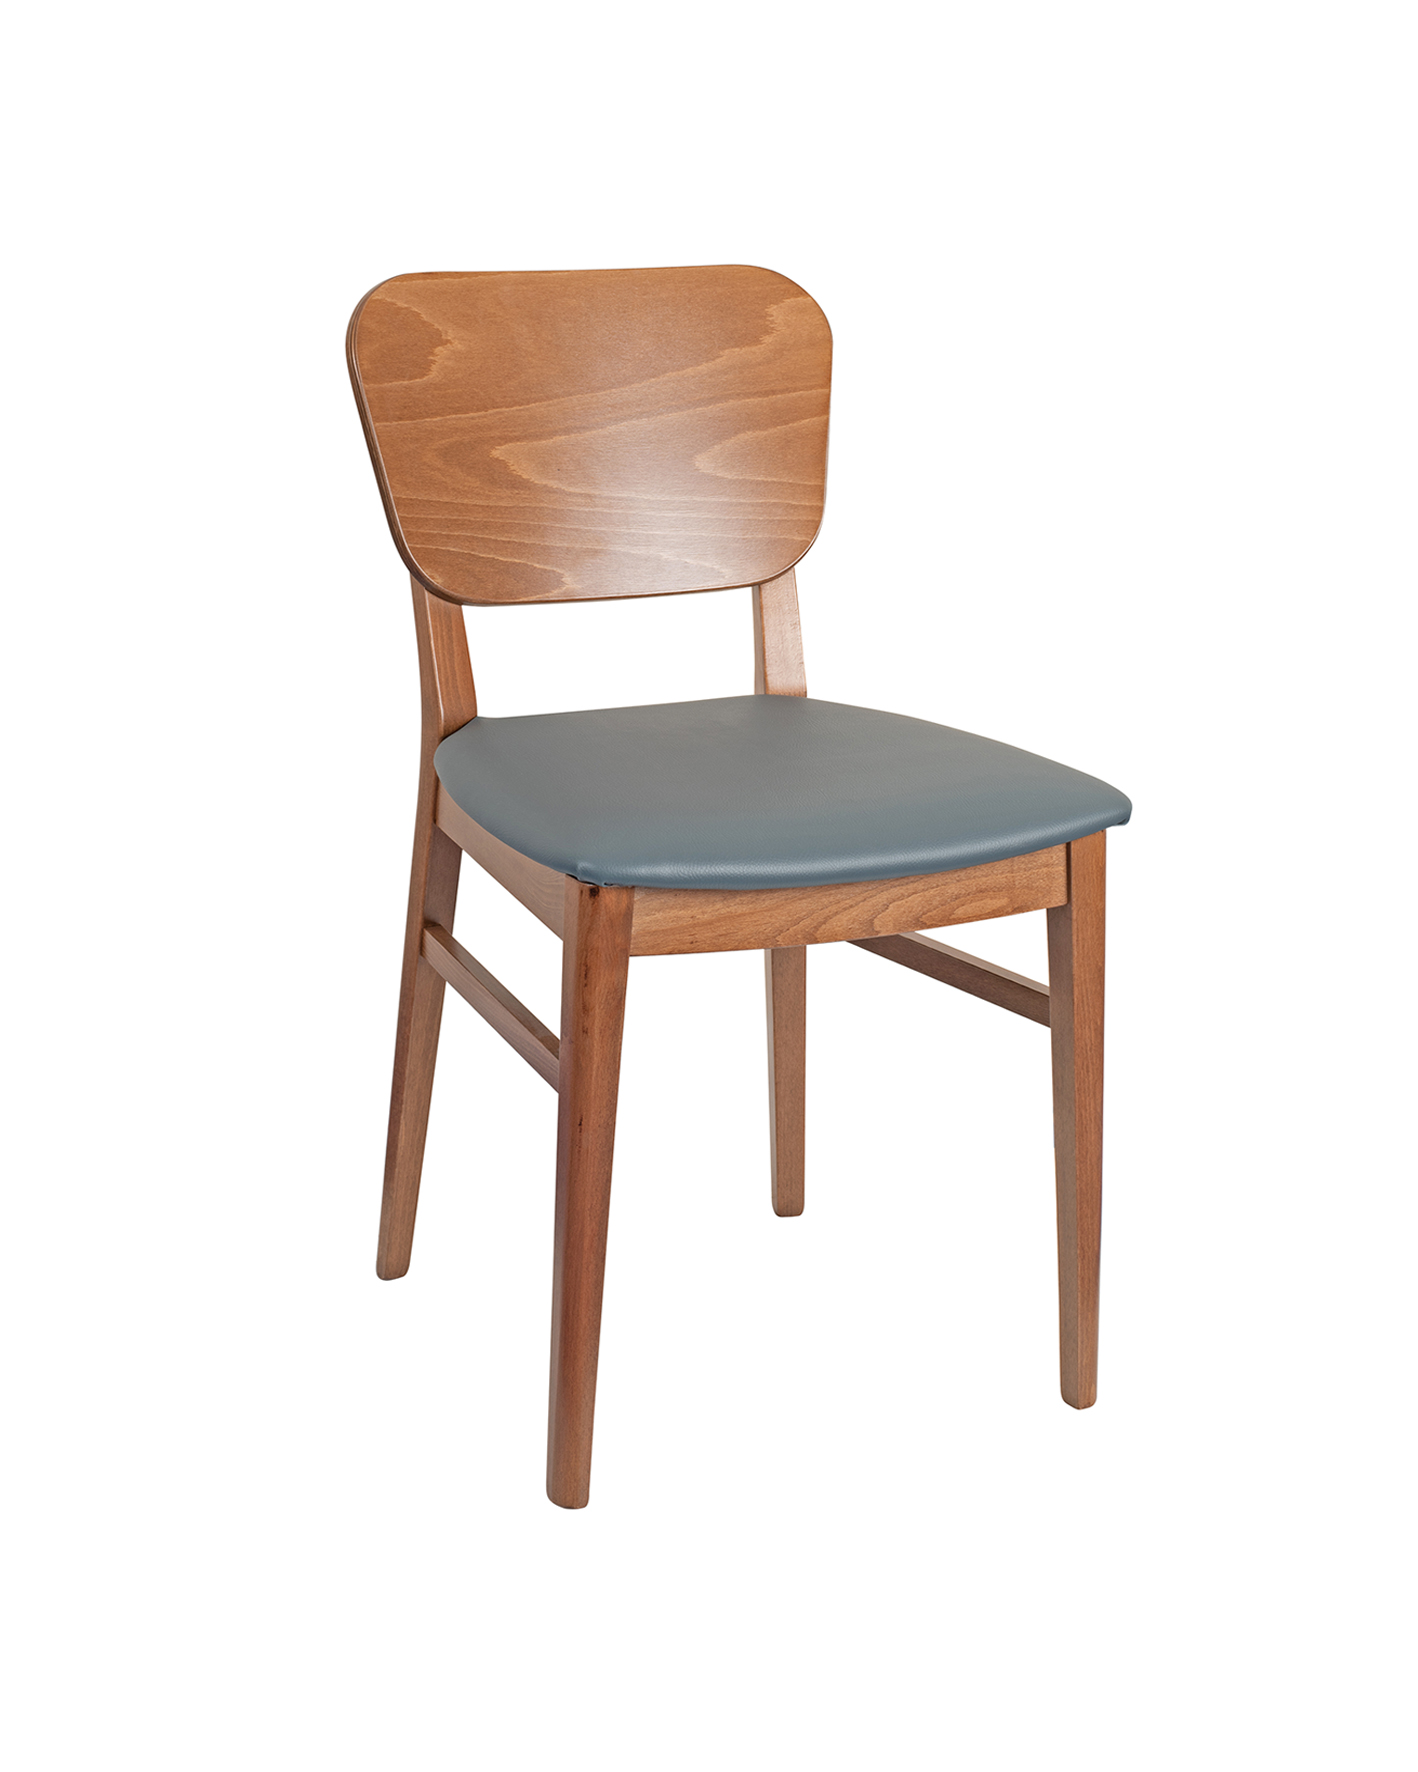 1941 SIDE CHAIR